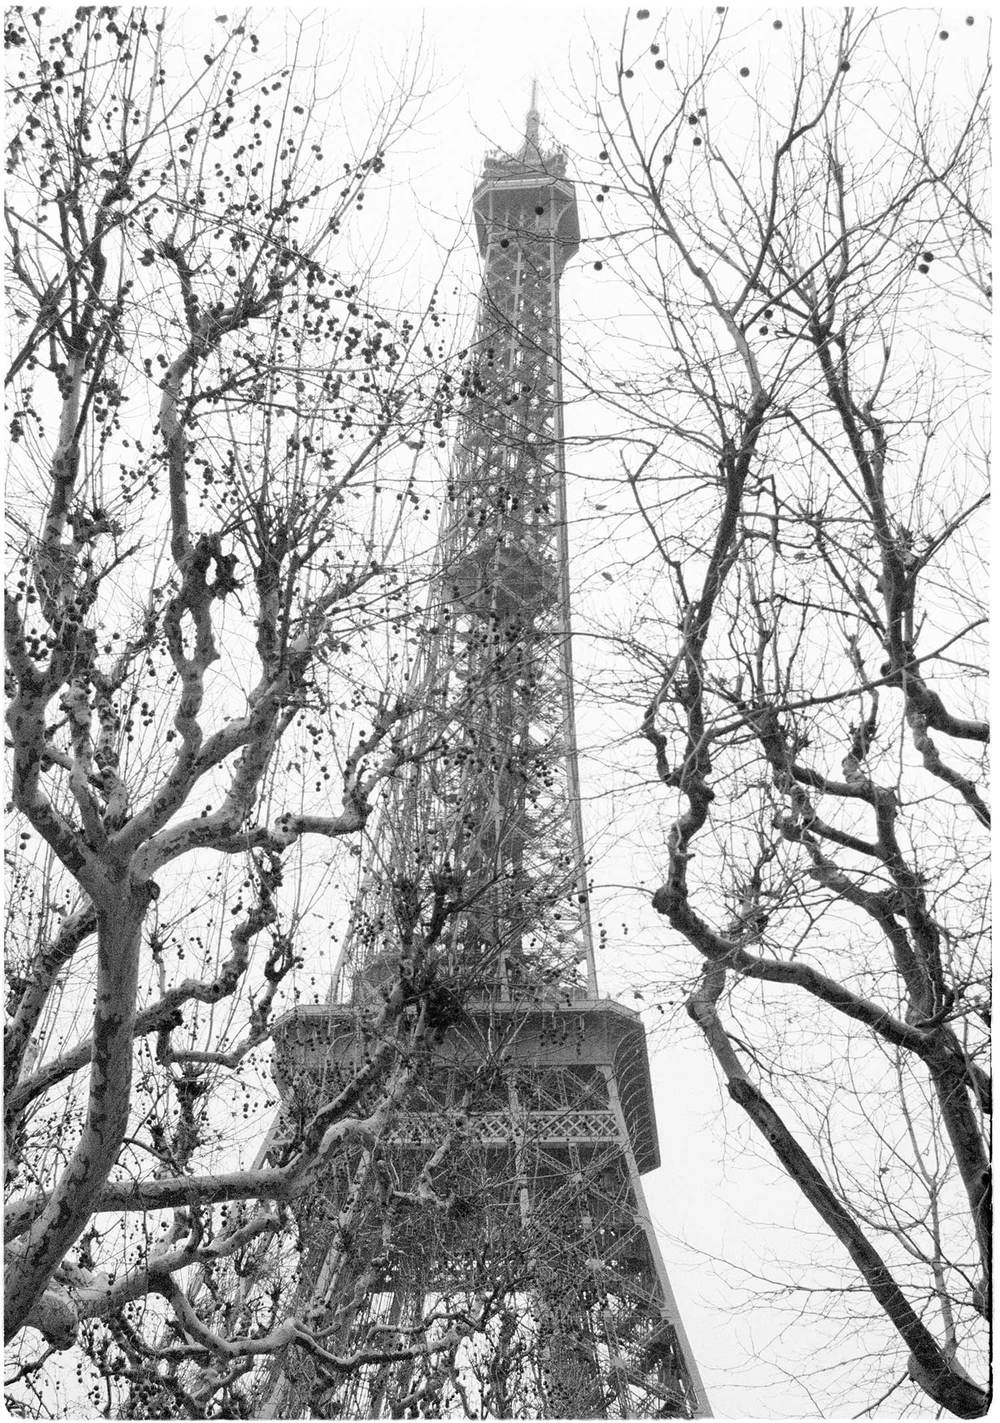 Eifel-Tower-web.jpg